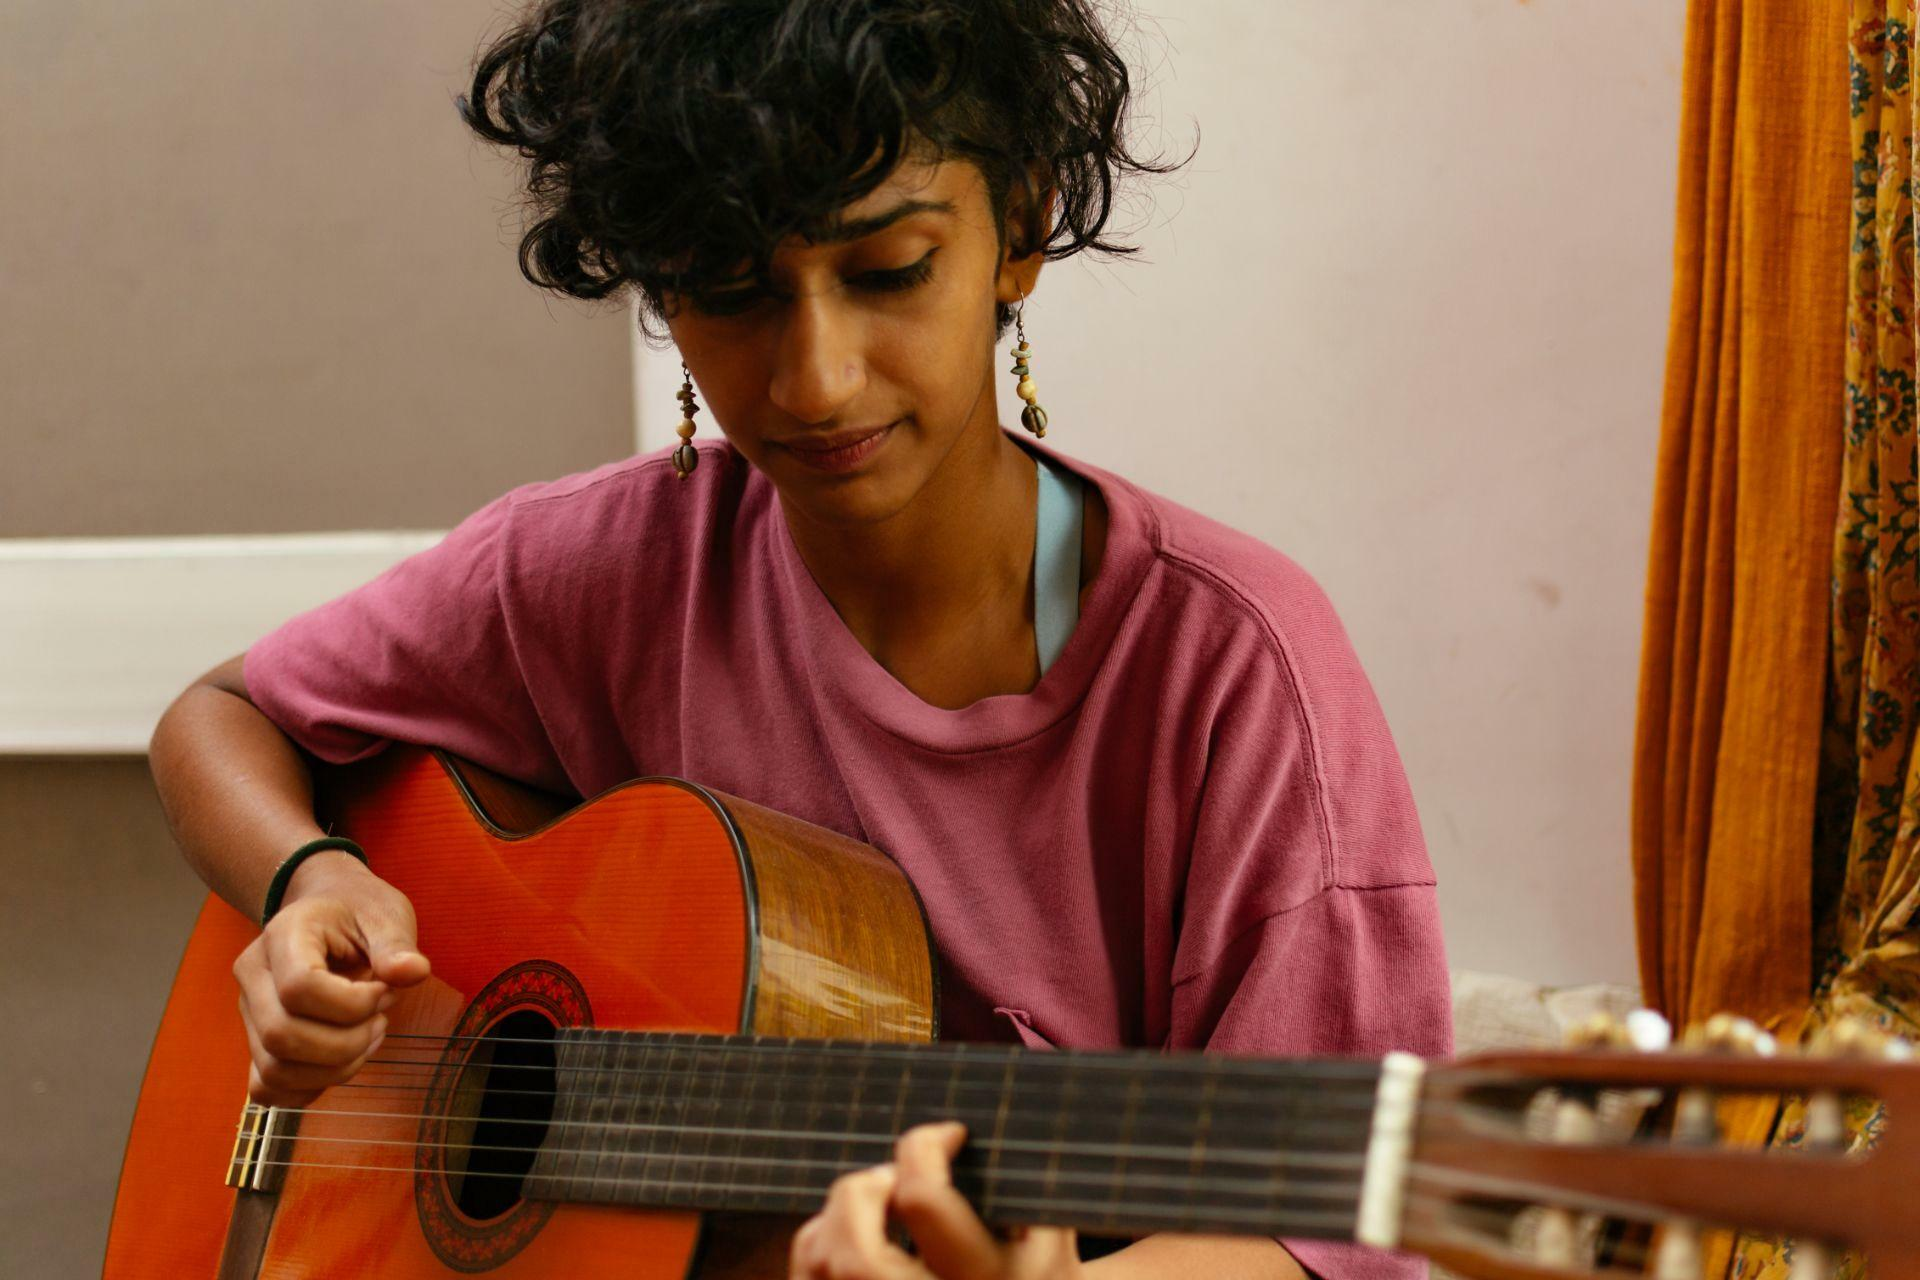 Girl playing guitar curly hair classical wearing pink